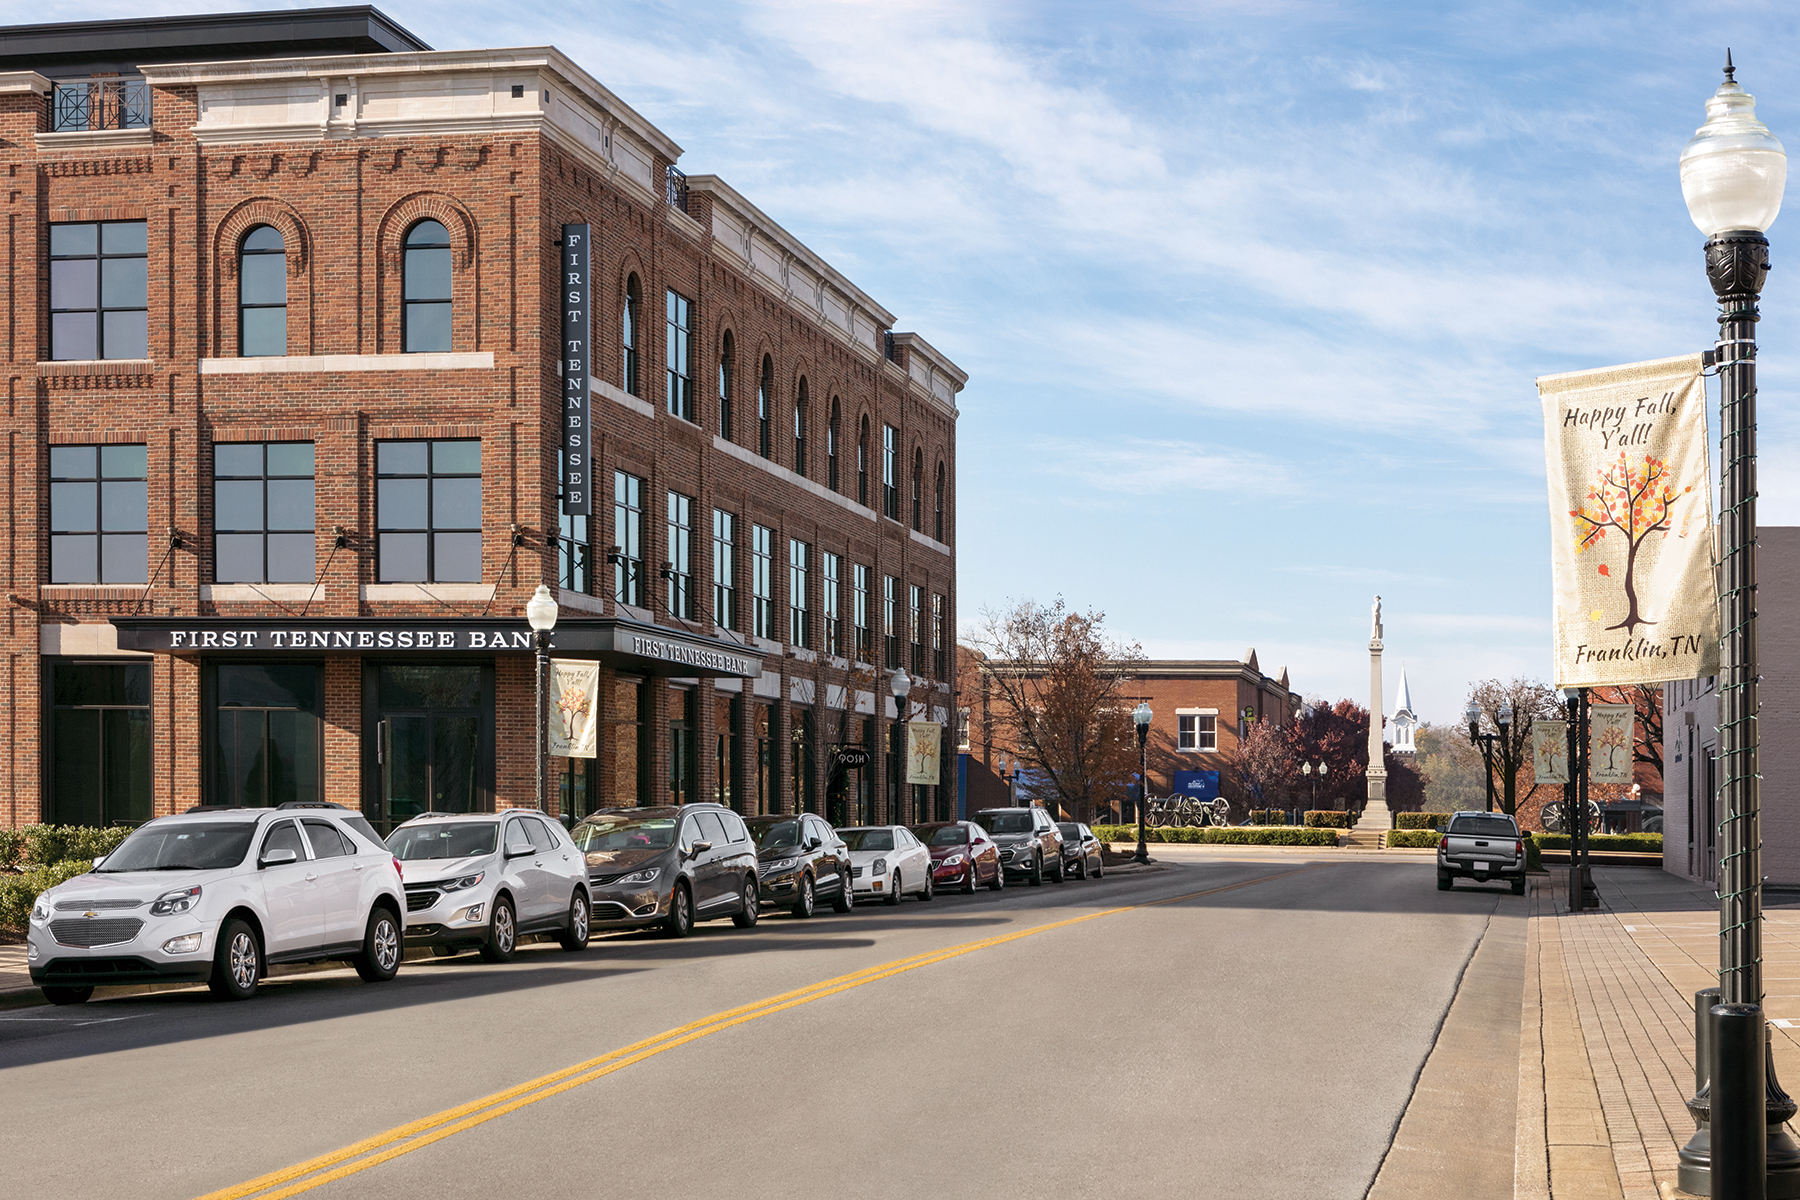 View of Franklin, Tennessee